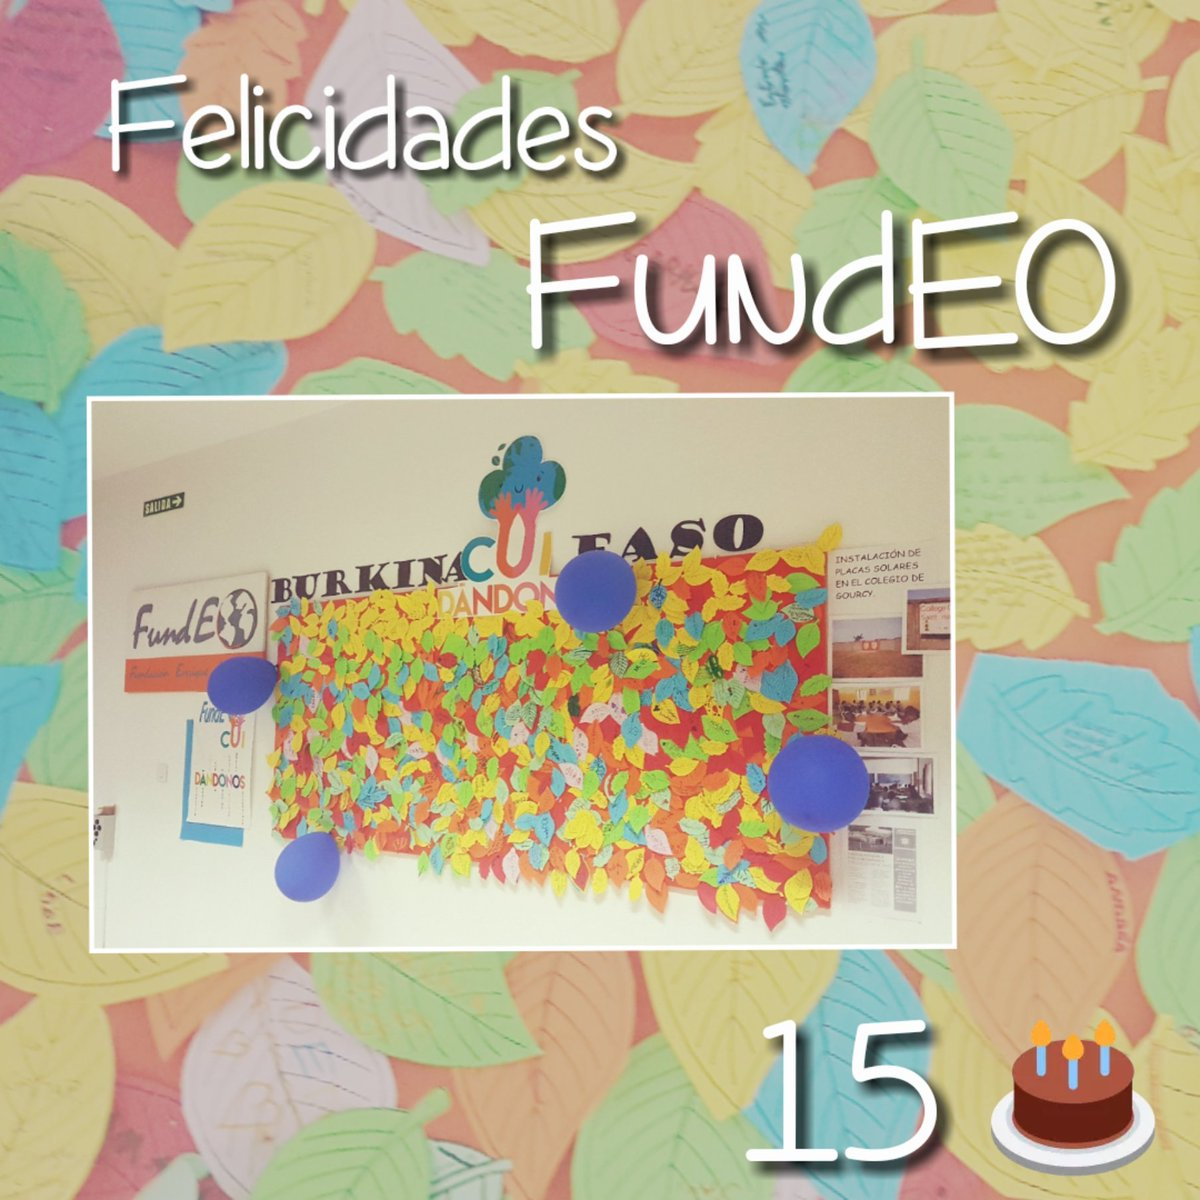 fundeo1